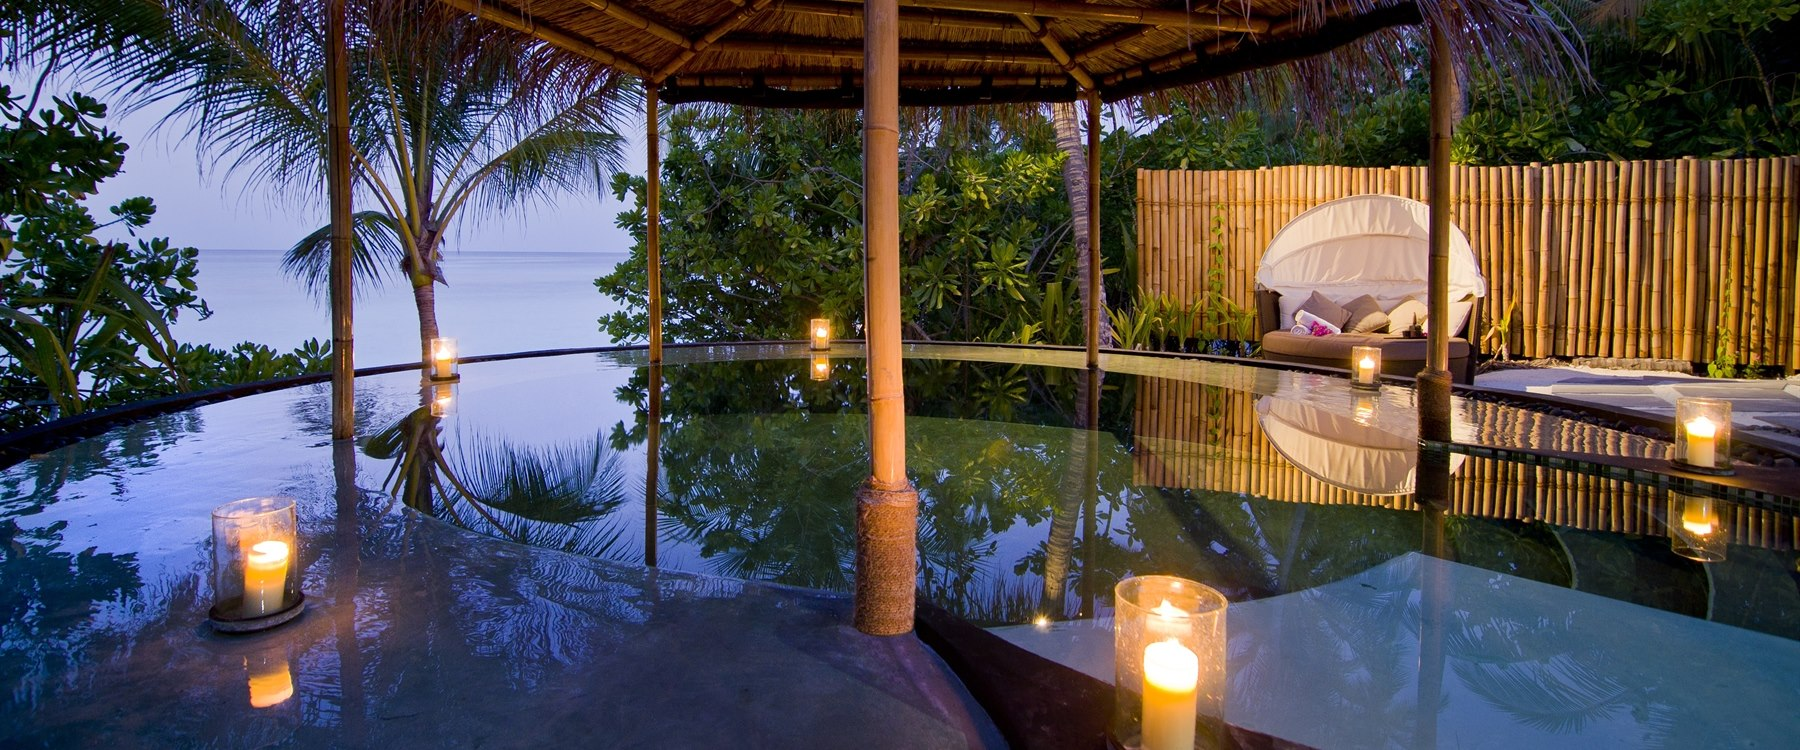 Reethi spa watsu pool at One&Only Reethi Rah, Maldives